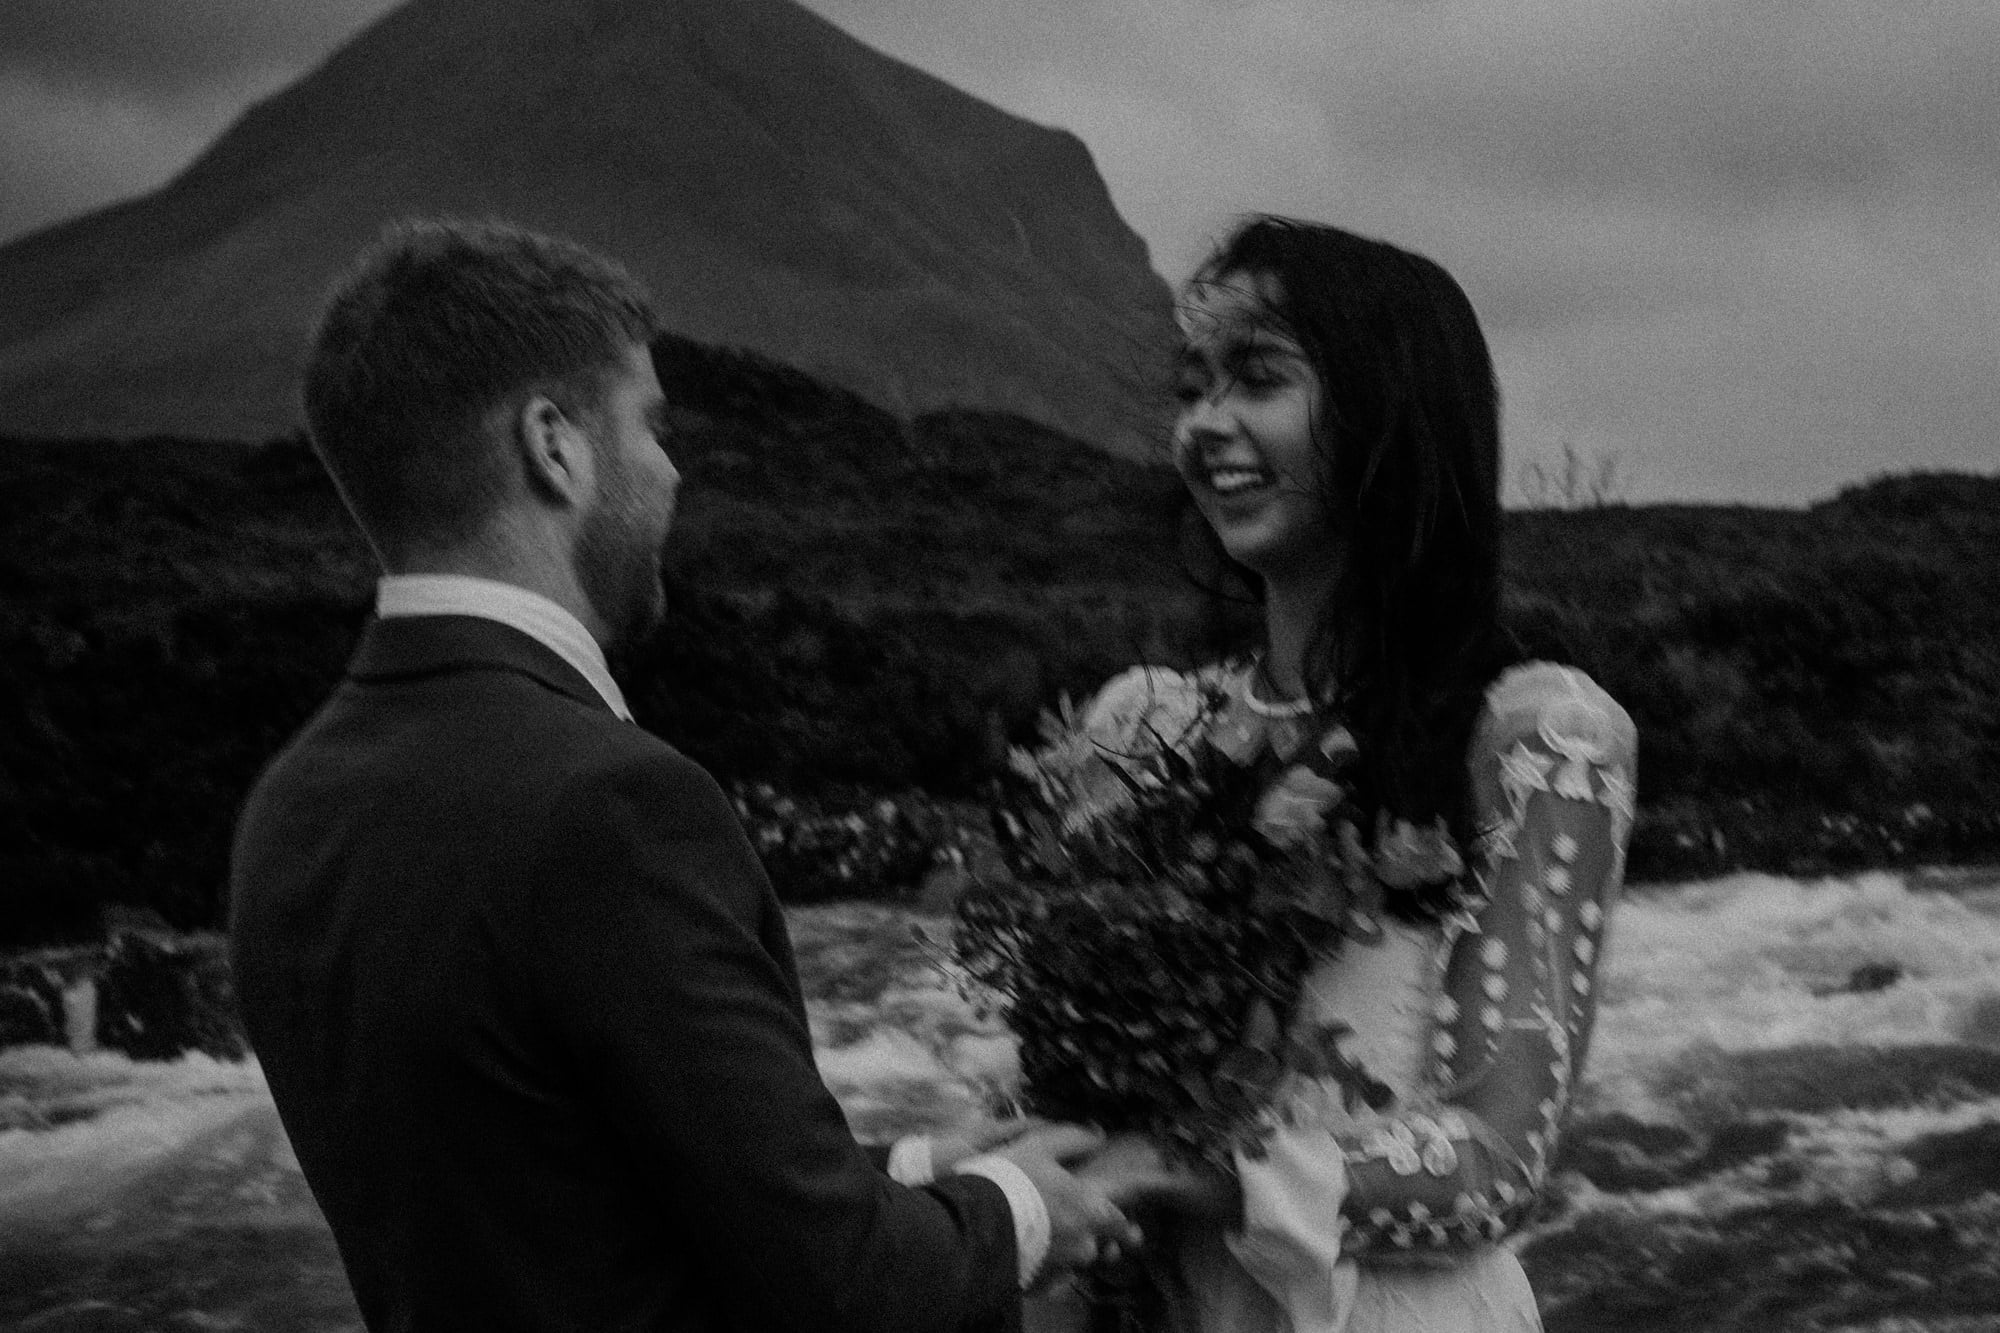 Isle of Skye Elopement Photographer, Sligachan Isle of Skye Elopement, The Quiraing Isle of Skye Elopement, the best locations to elope Isle of Skye,